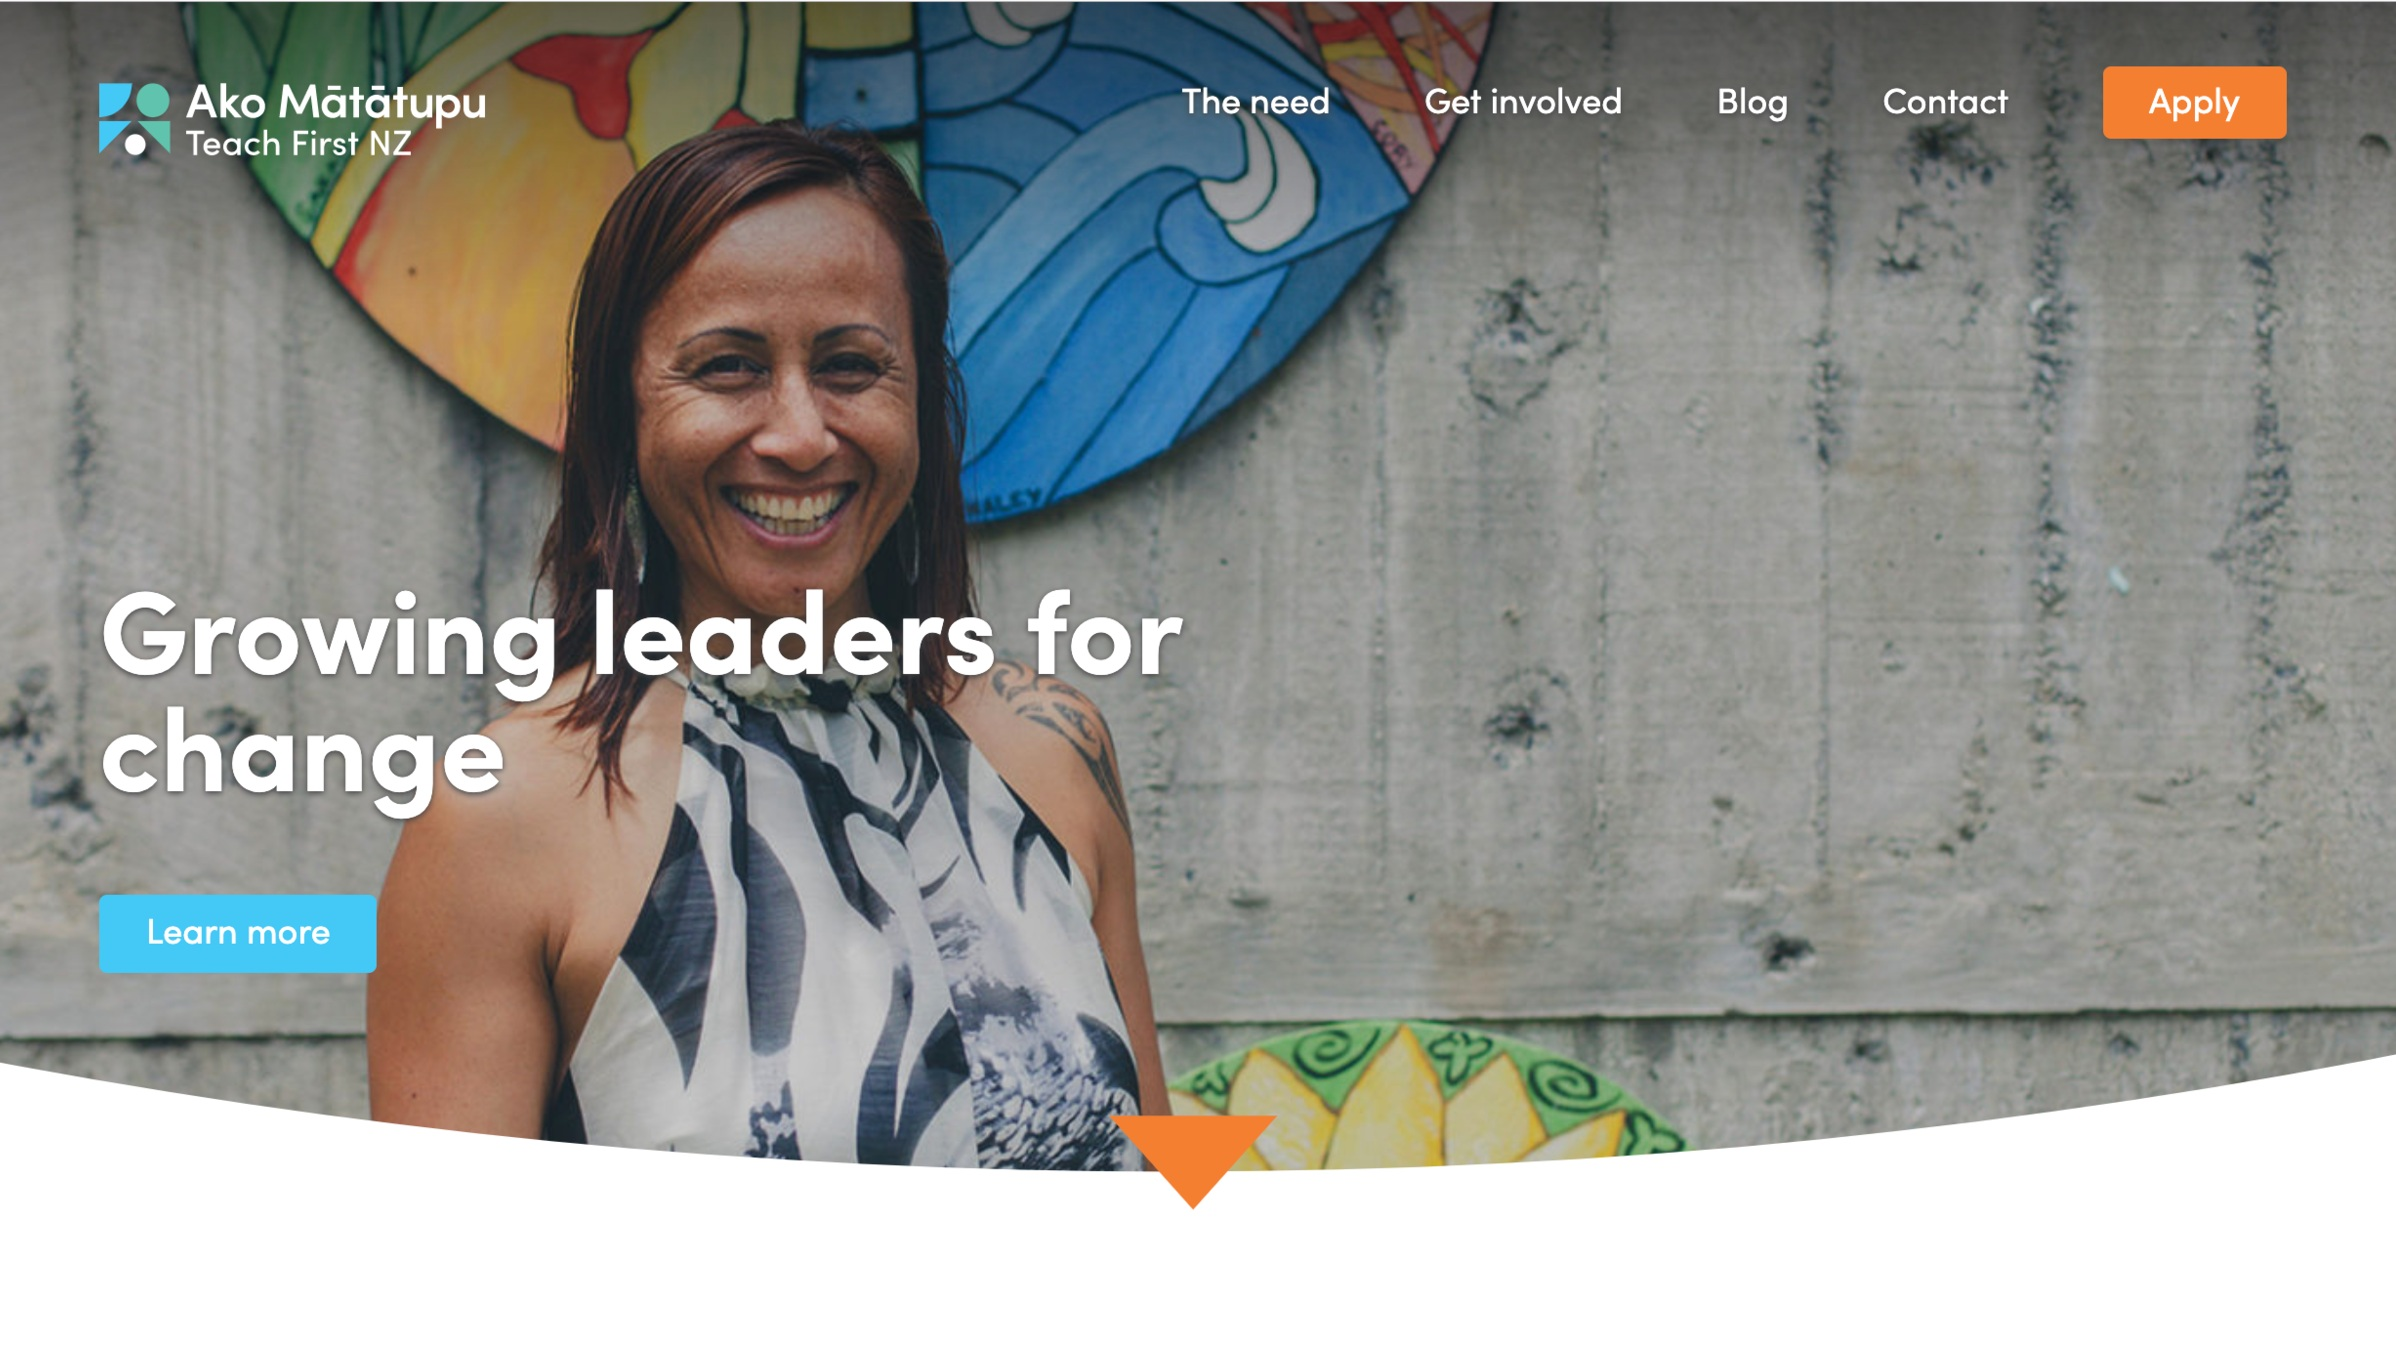 Case D ('Teach First' based in Great Britain and also in NZ) - A teaching and education leadership programme which creates initiatives for teachers to accept roles in secondary schools serving a low-income community over two years, by paying for their Masters qualification.